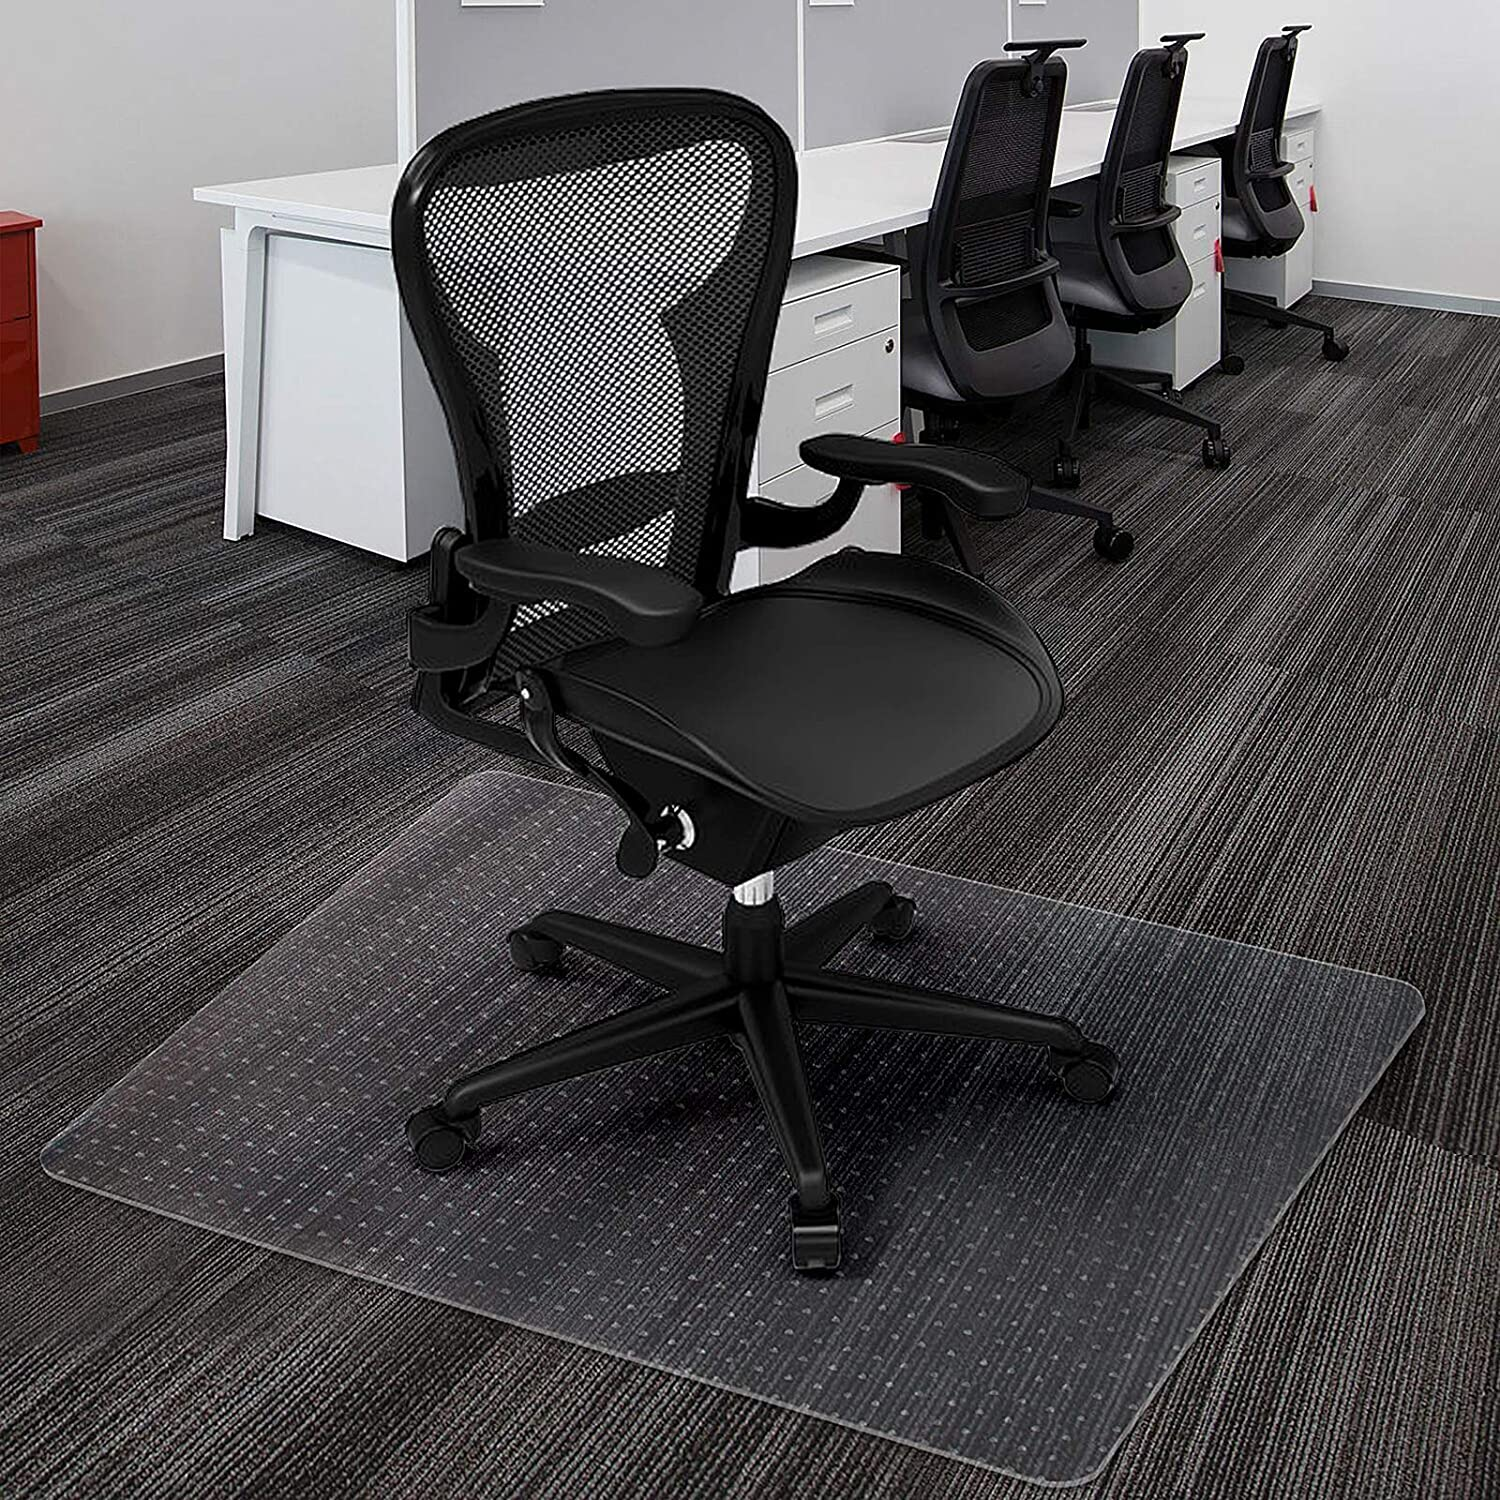 Azadx Home Office Chair Mat for Low, Standard and No Pile Carpeted Floors, Transparent Carpet Protector (30 x 48'' Rectangle)